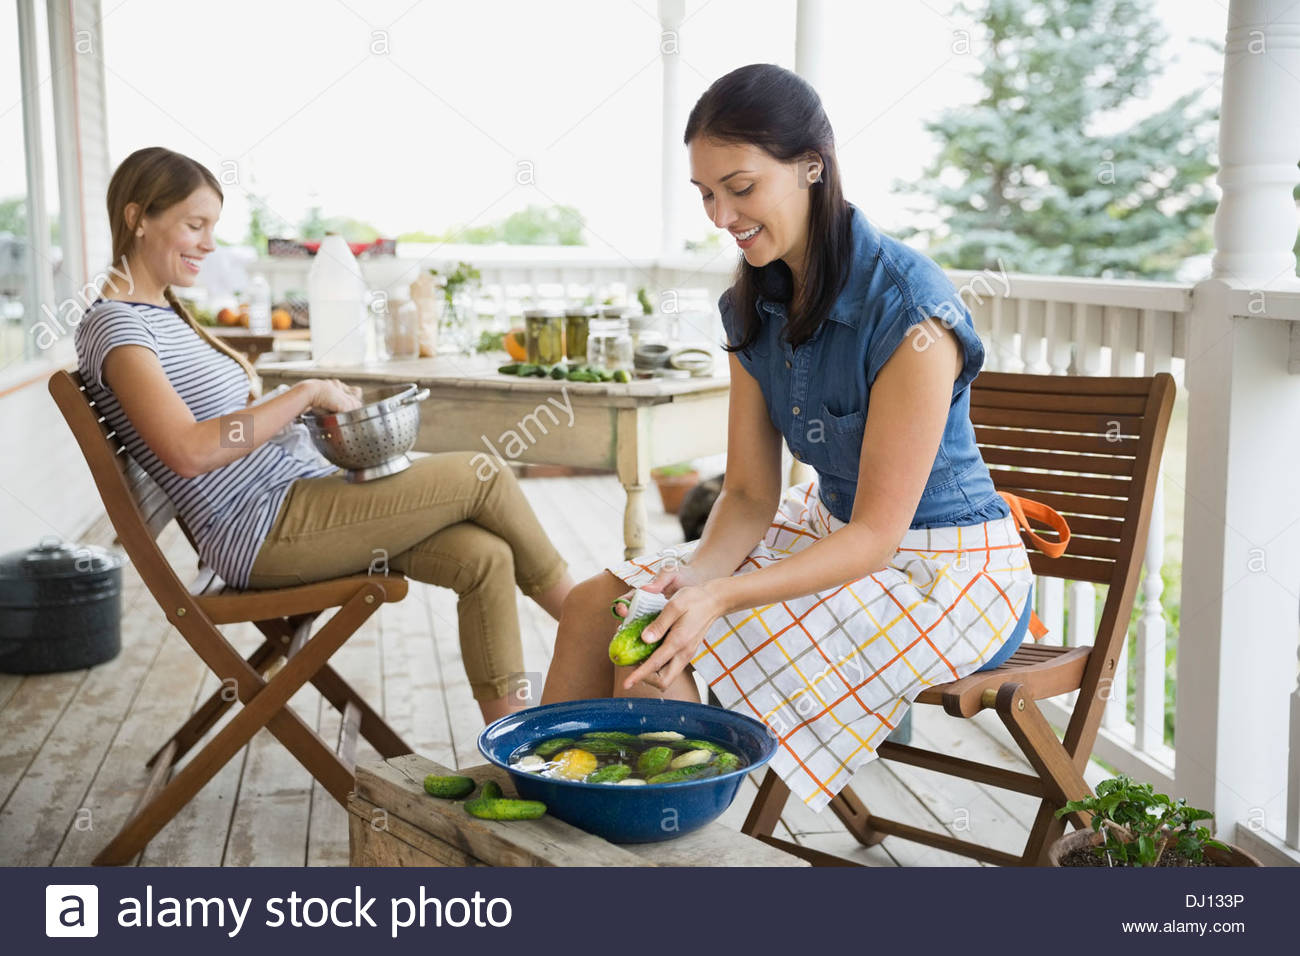 Women washing vegetables for canning - Stock Image